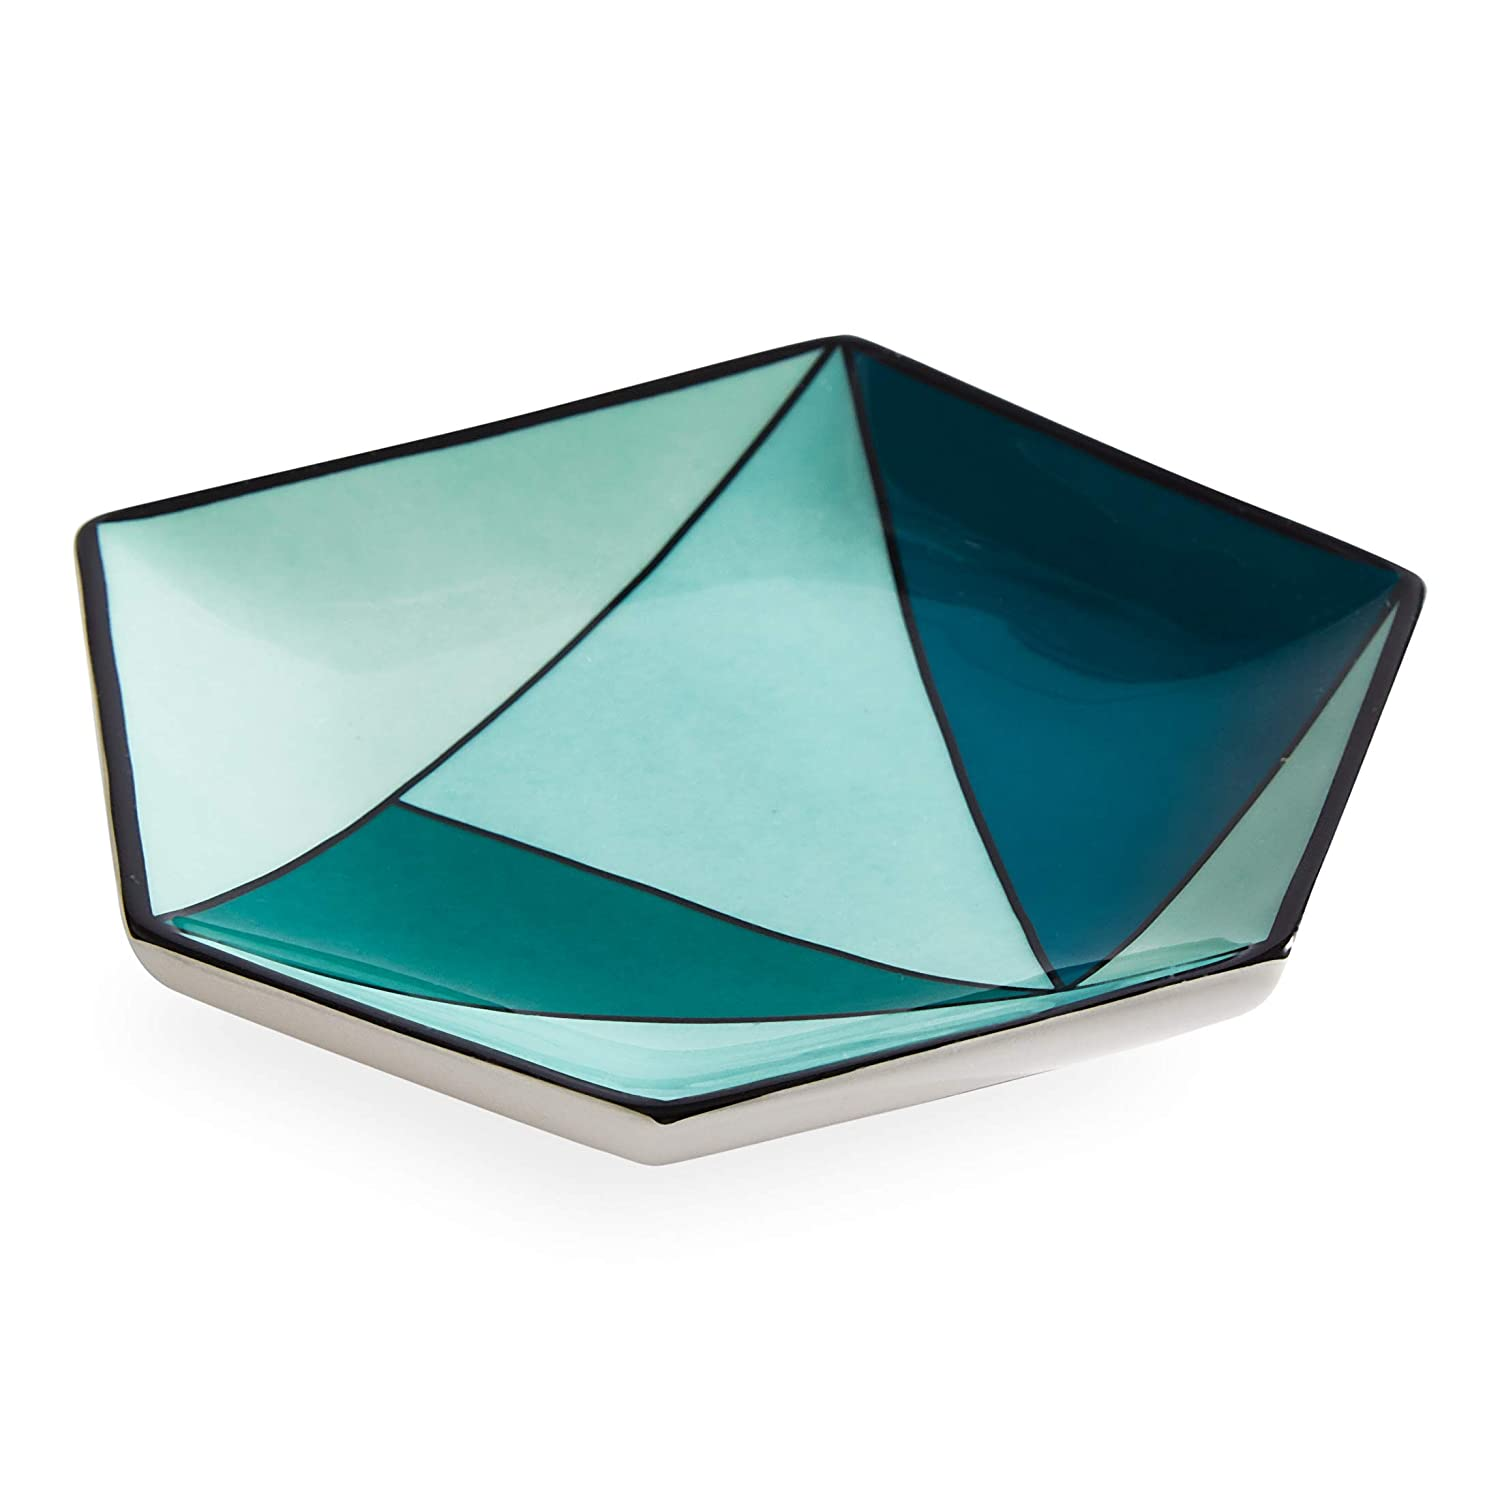 Now House by Jonathan Adler Facet Small Decorative Tray, Green